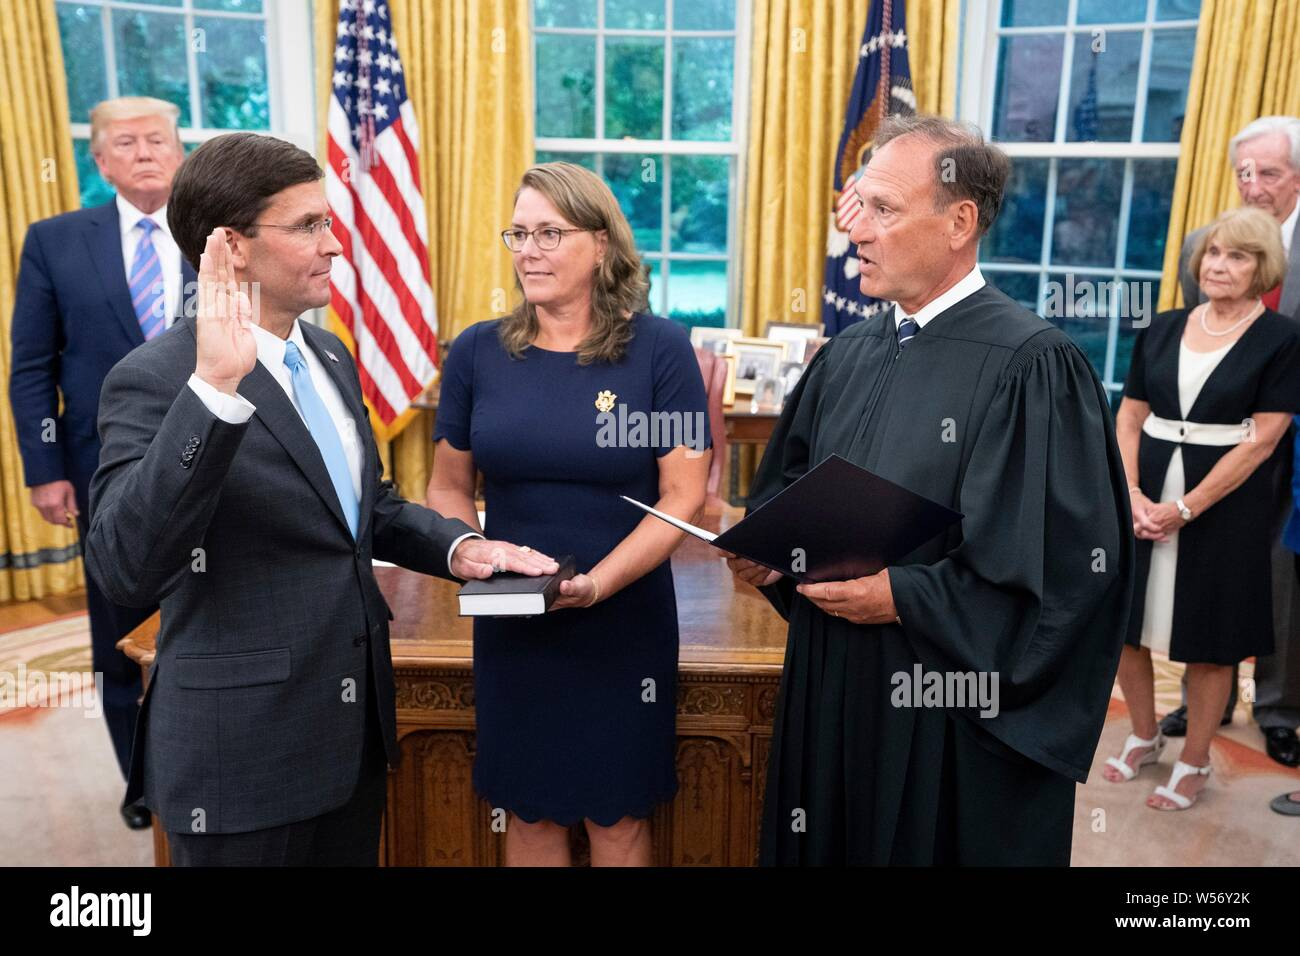 U.S Secretary of Defense Mark Esper, left, takes the oath of office from Supreme Court Associate Justice Samuel Alito as his wife Leah Lacy, center, looks on, during a ceremony in the Oval Office of the White House July 23, 2019 in Washington, DC. Stock Photo